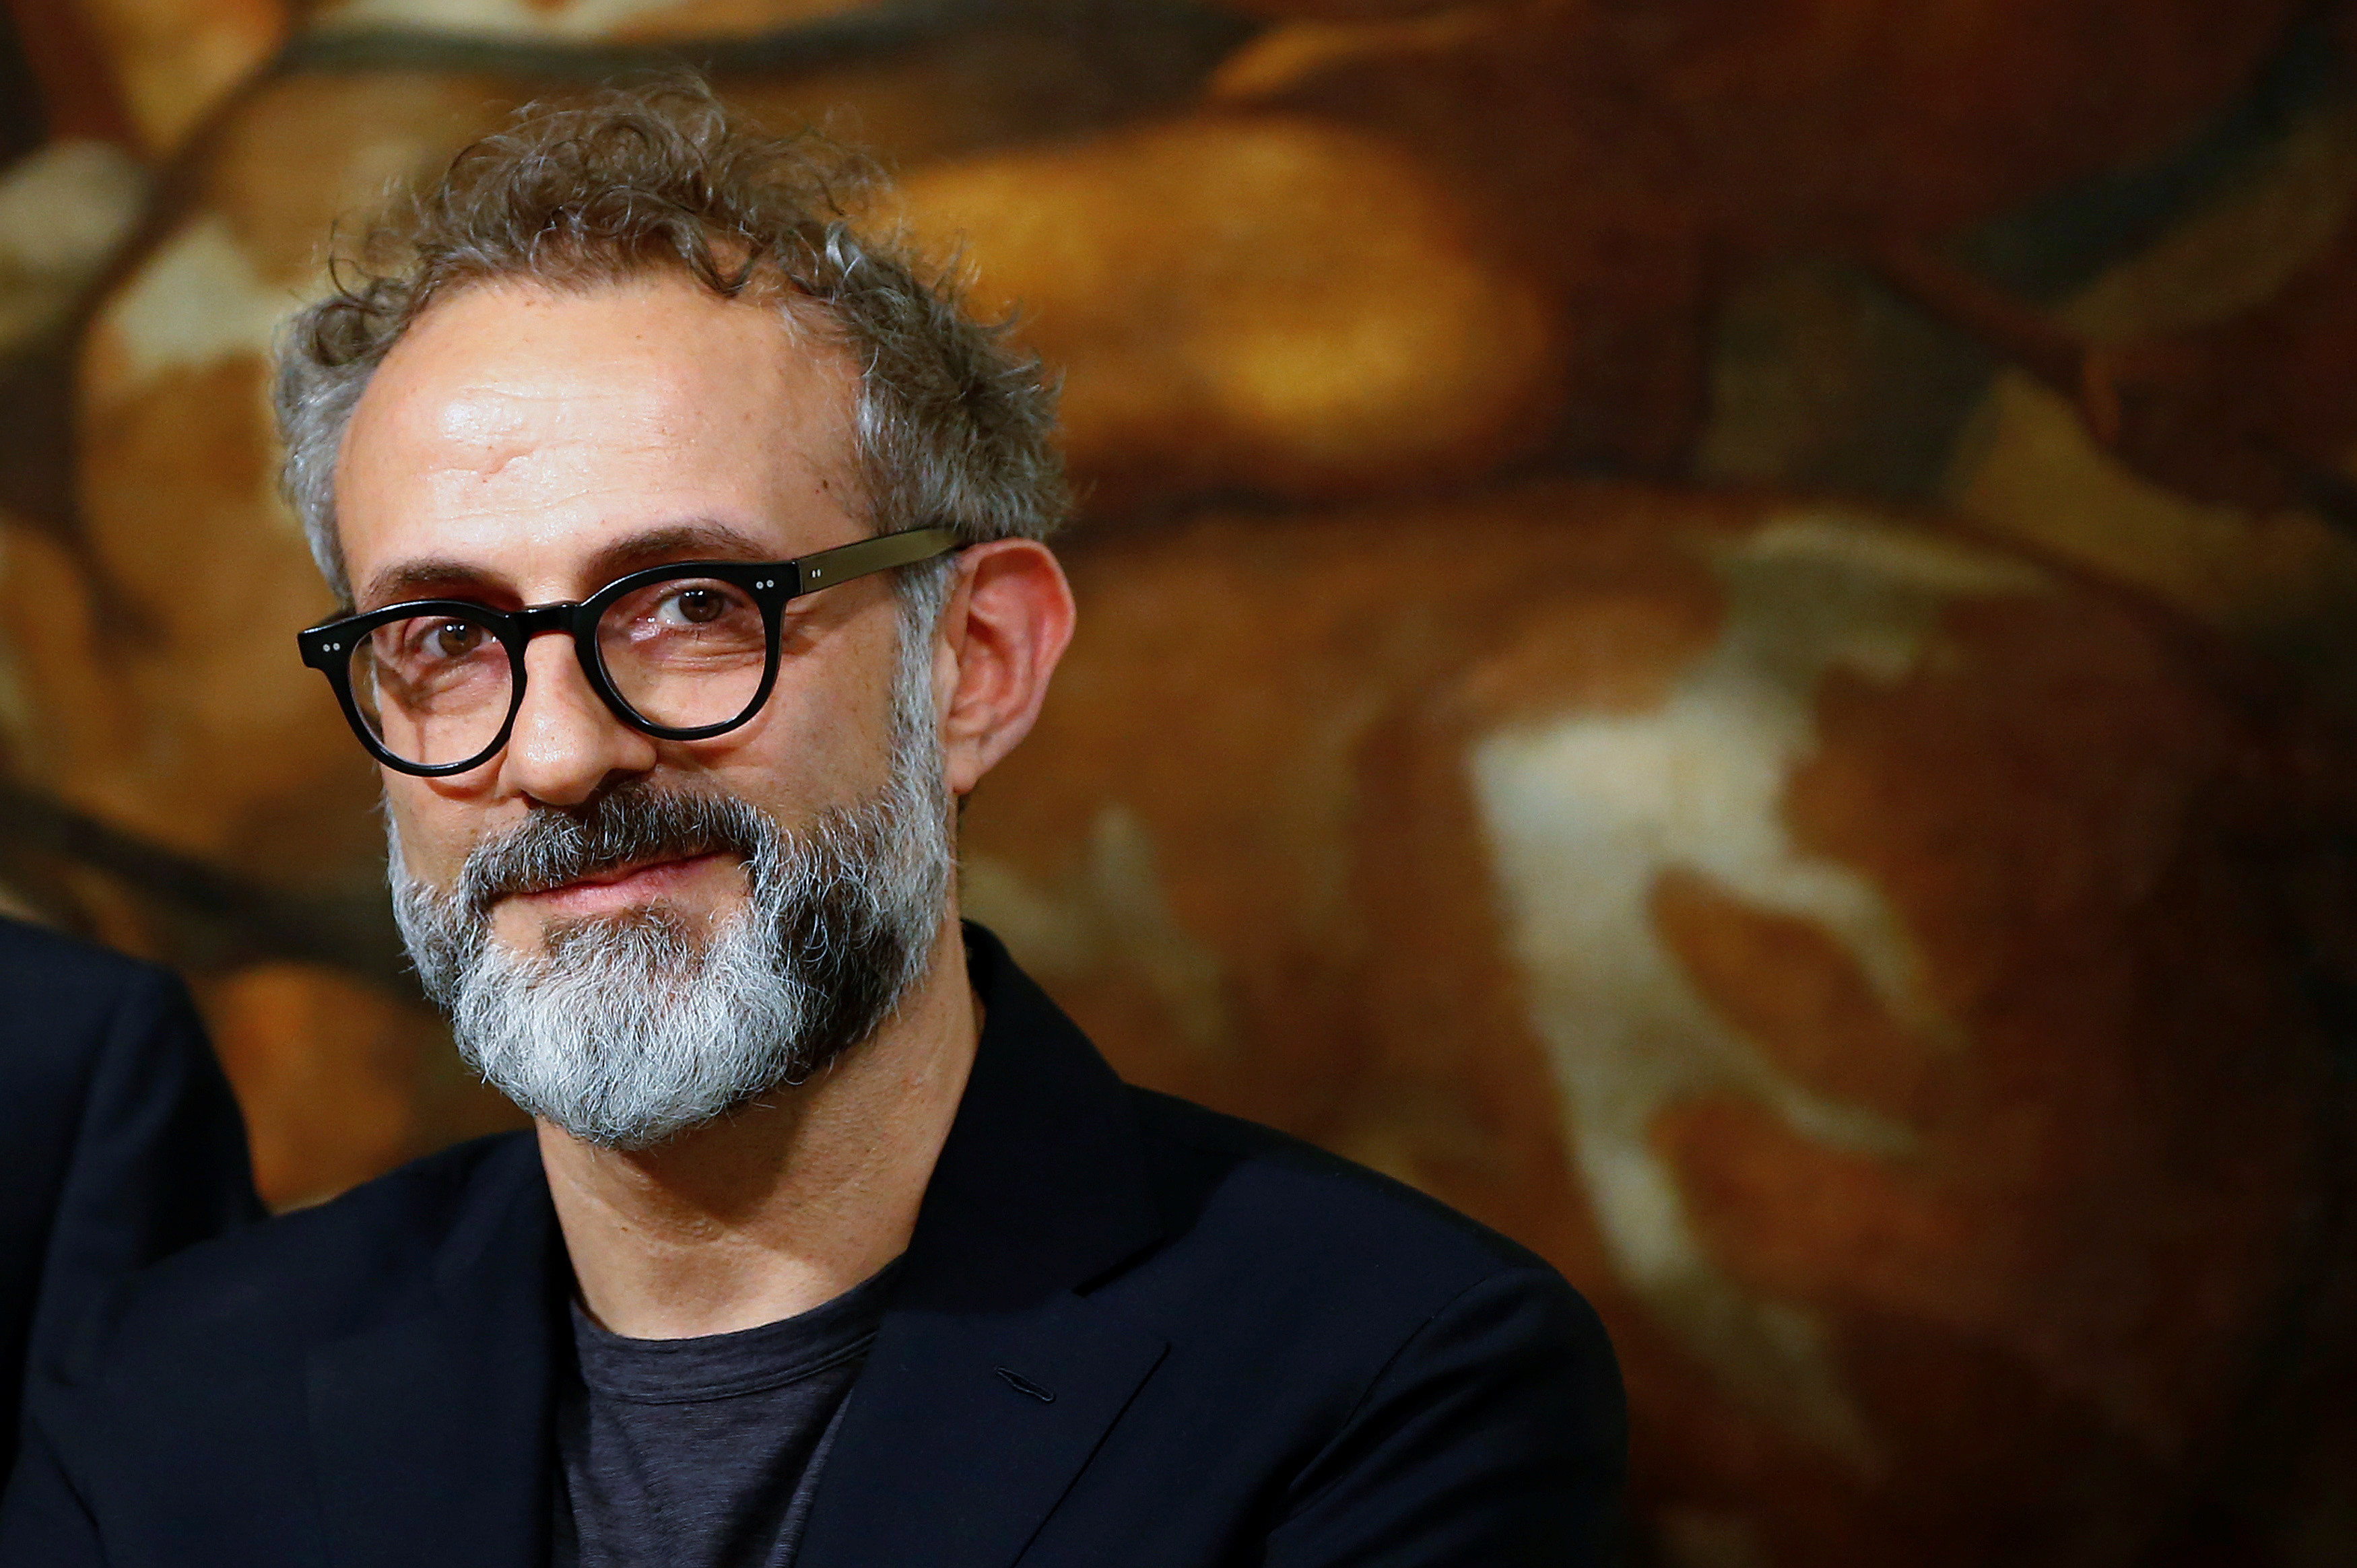 """Osteria Francescana's chef-owner Massimo Bottura looks on during a ceremony, to celebrate his victory in the """"World's 50 Best Restaurants 2016"""", at Chigi Palace in Rome, Italy June 20, 2016."""